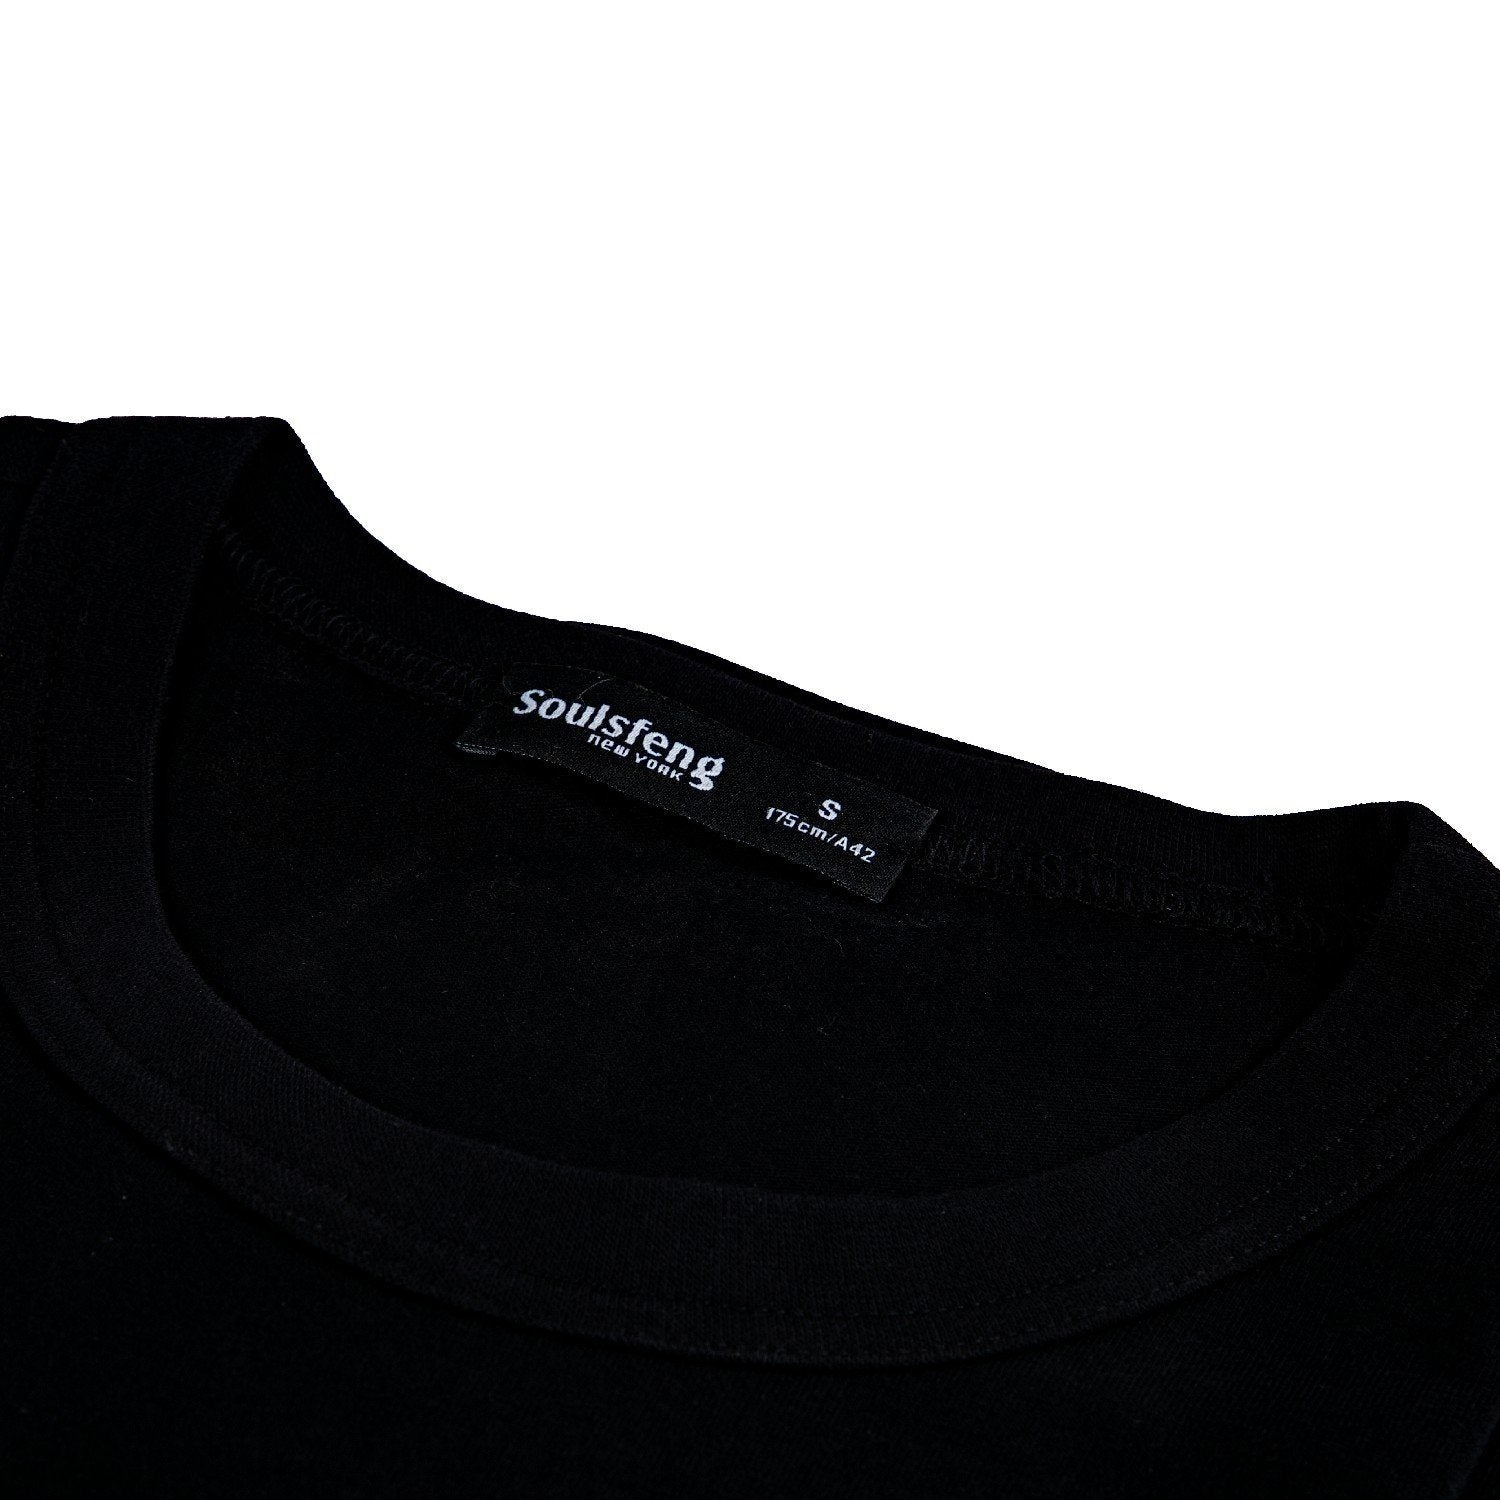 Soulsfeng X Street Veteran Diamond Tee Shirt Black